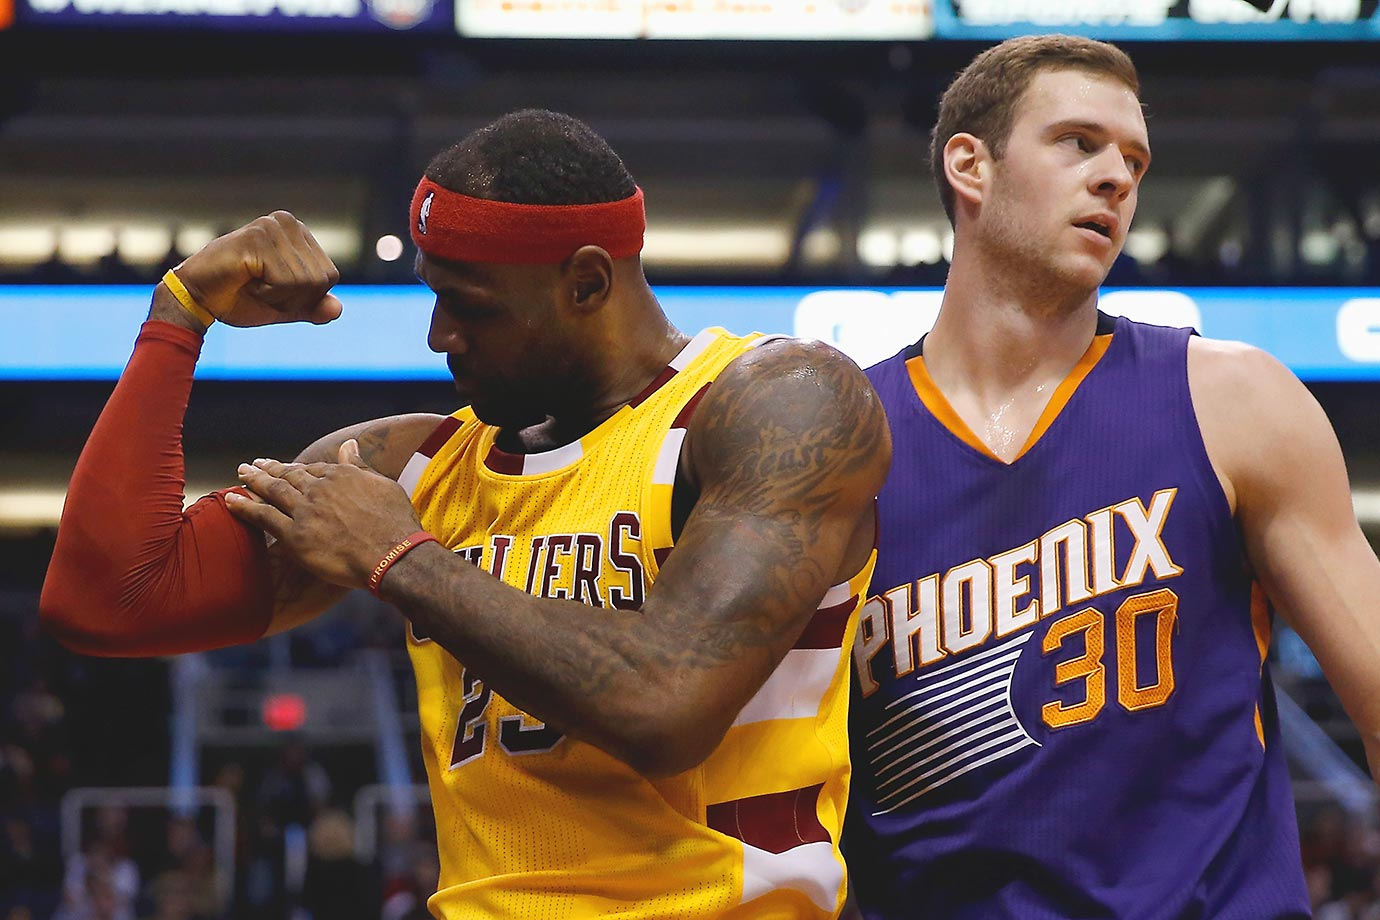 LeBron James of the Cleveland Cavaliers flexes after scoring and drawing a foul from Jon Leuer of the Suns.